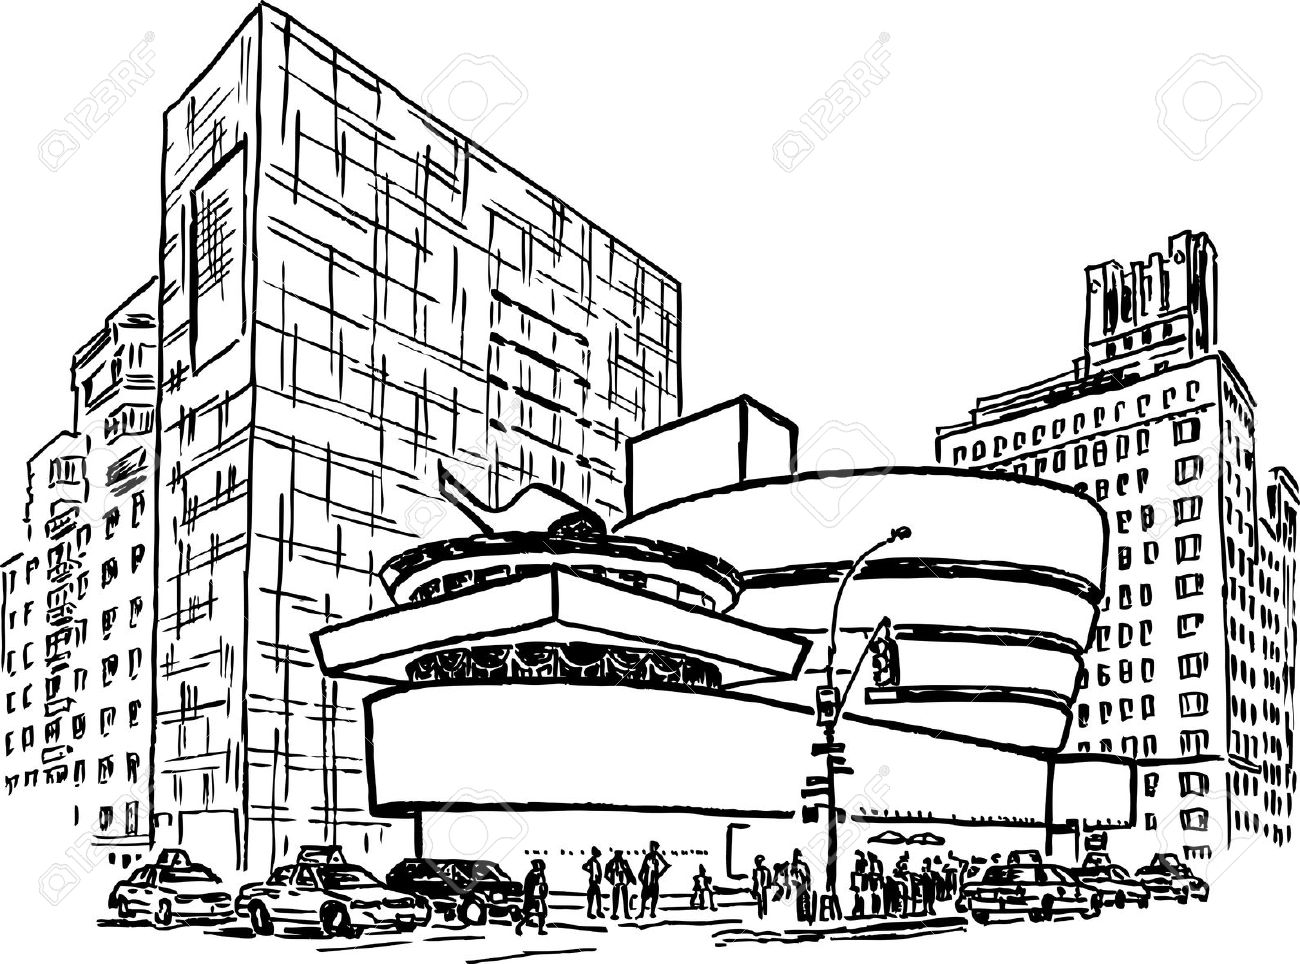 Guggenheim Museum In New York City Royalty Free Cliparts, Vectors.